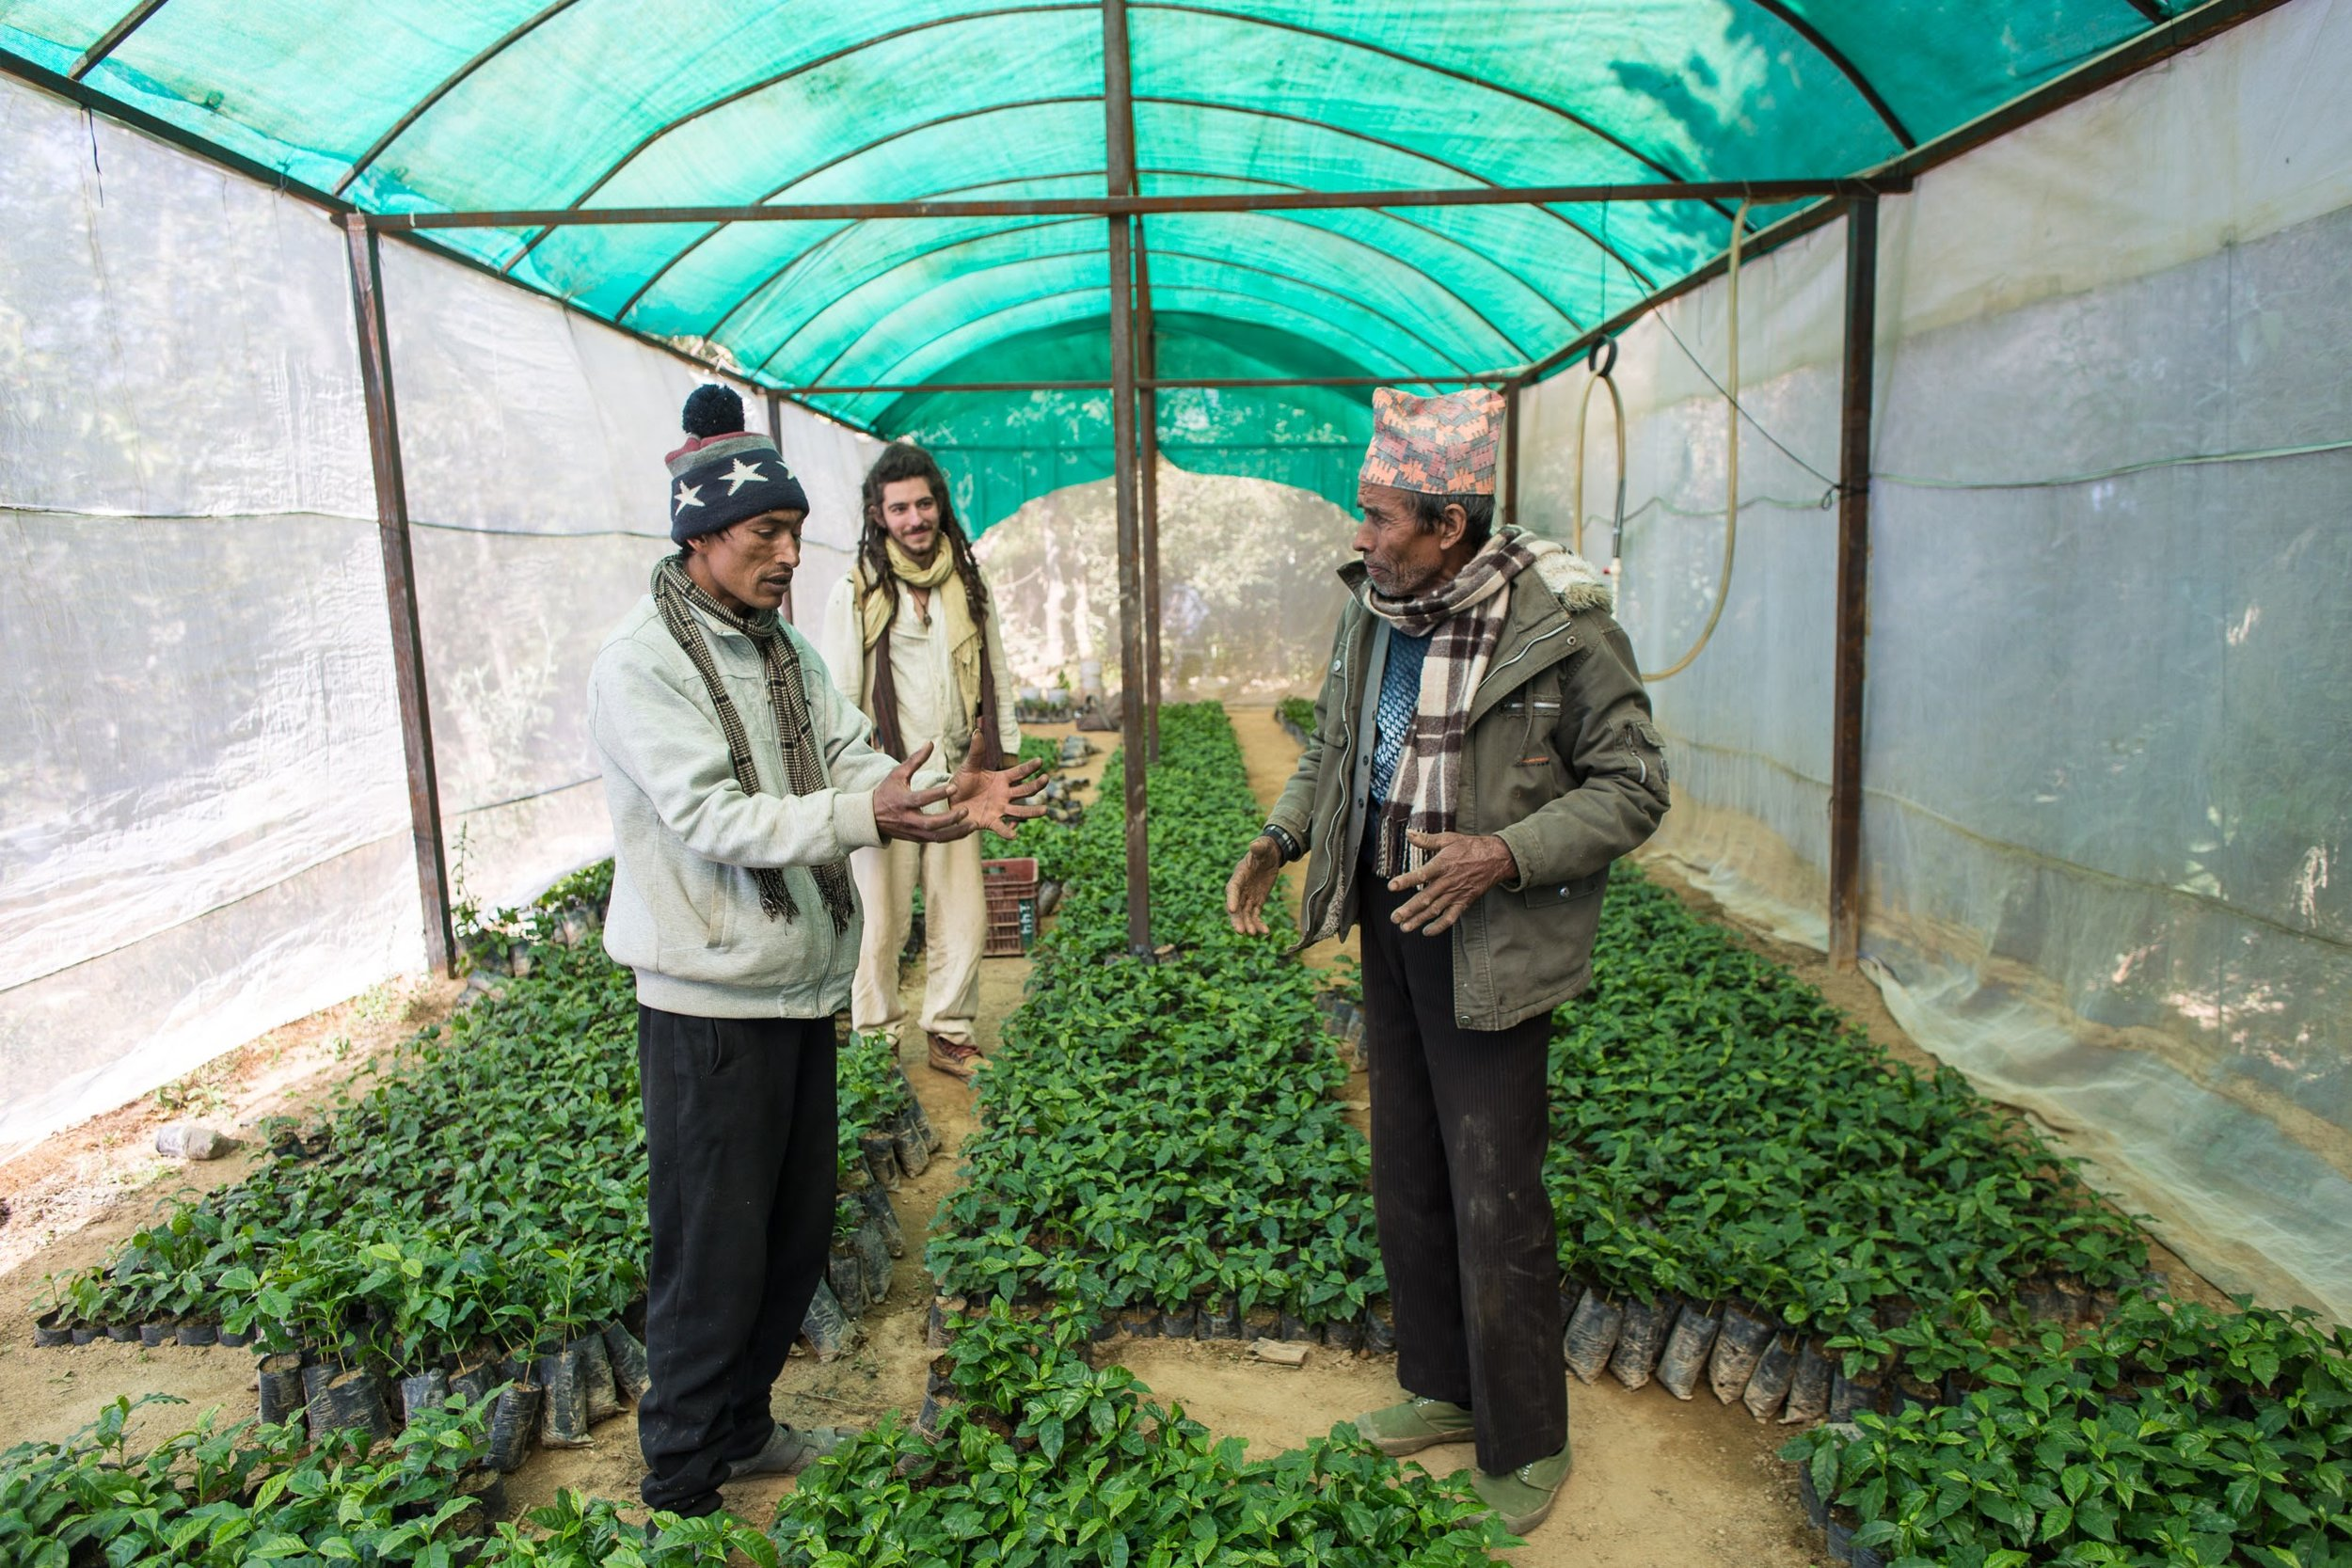 Narayan, Greg, and Shyam talking coffee in the Conscious Impact greenhouse.